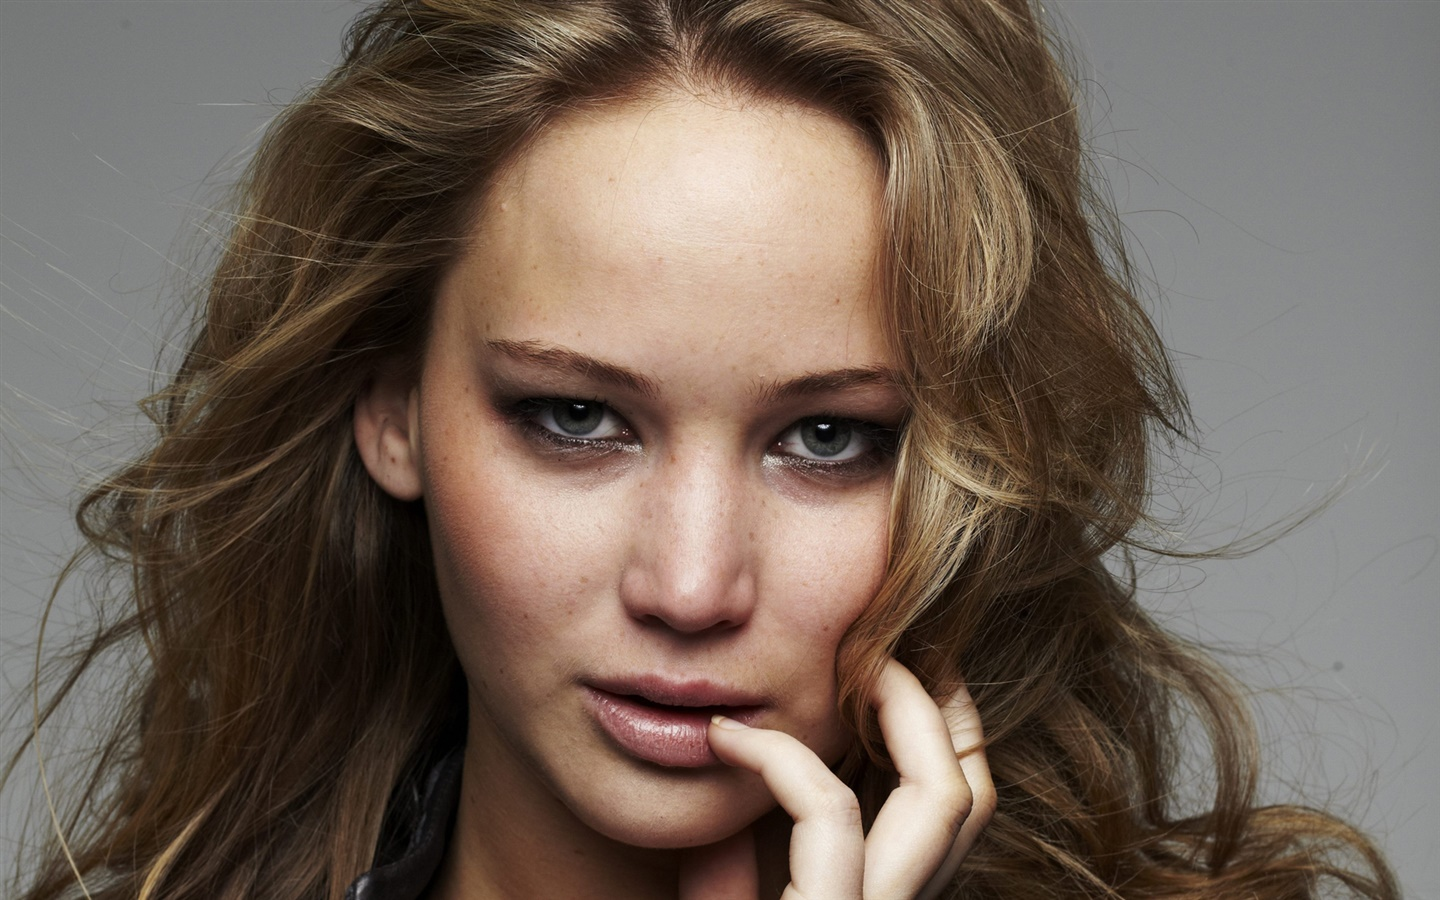 Jennifer Lawrence 12 1440x900 wallpaper